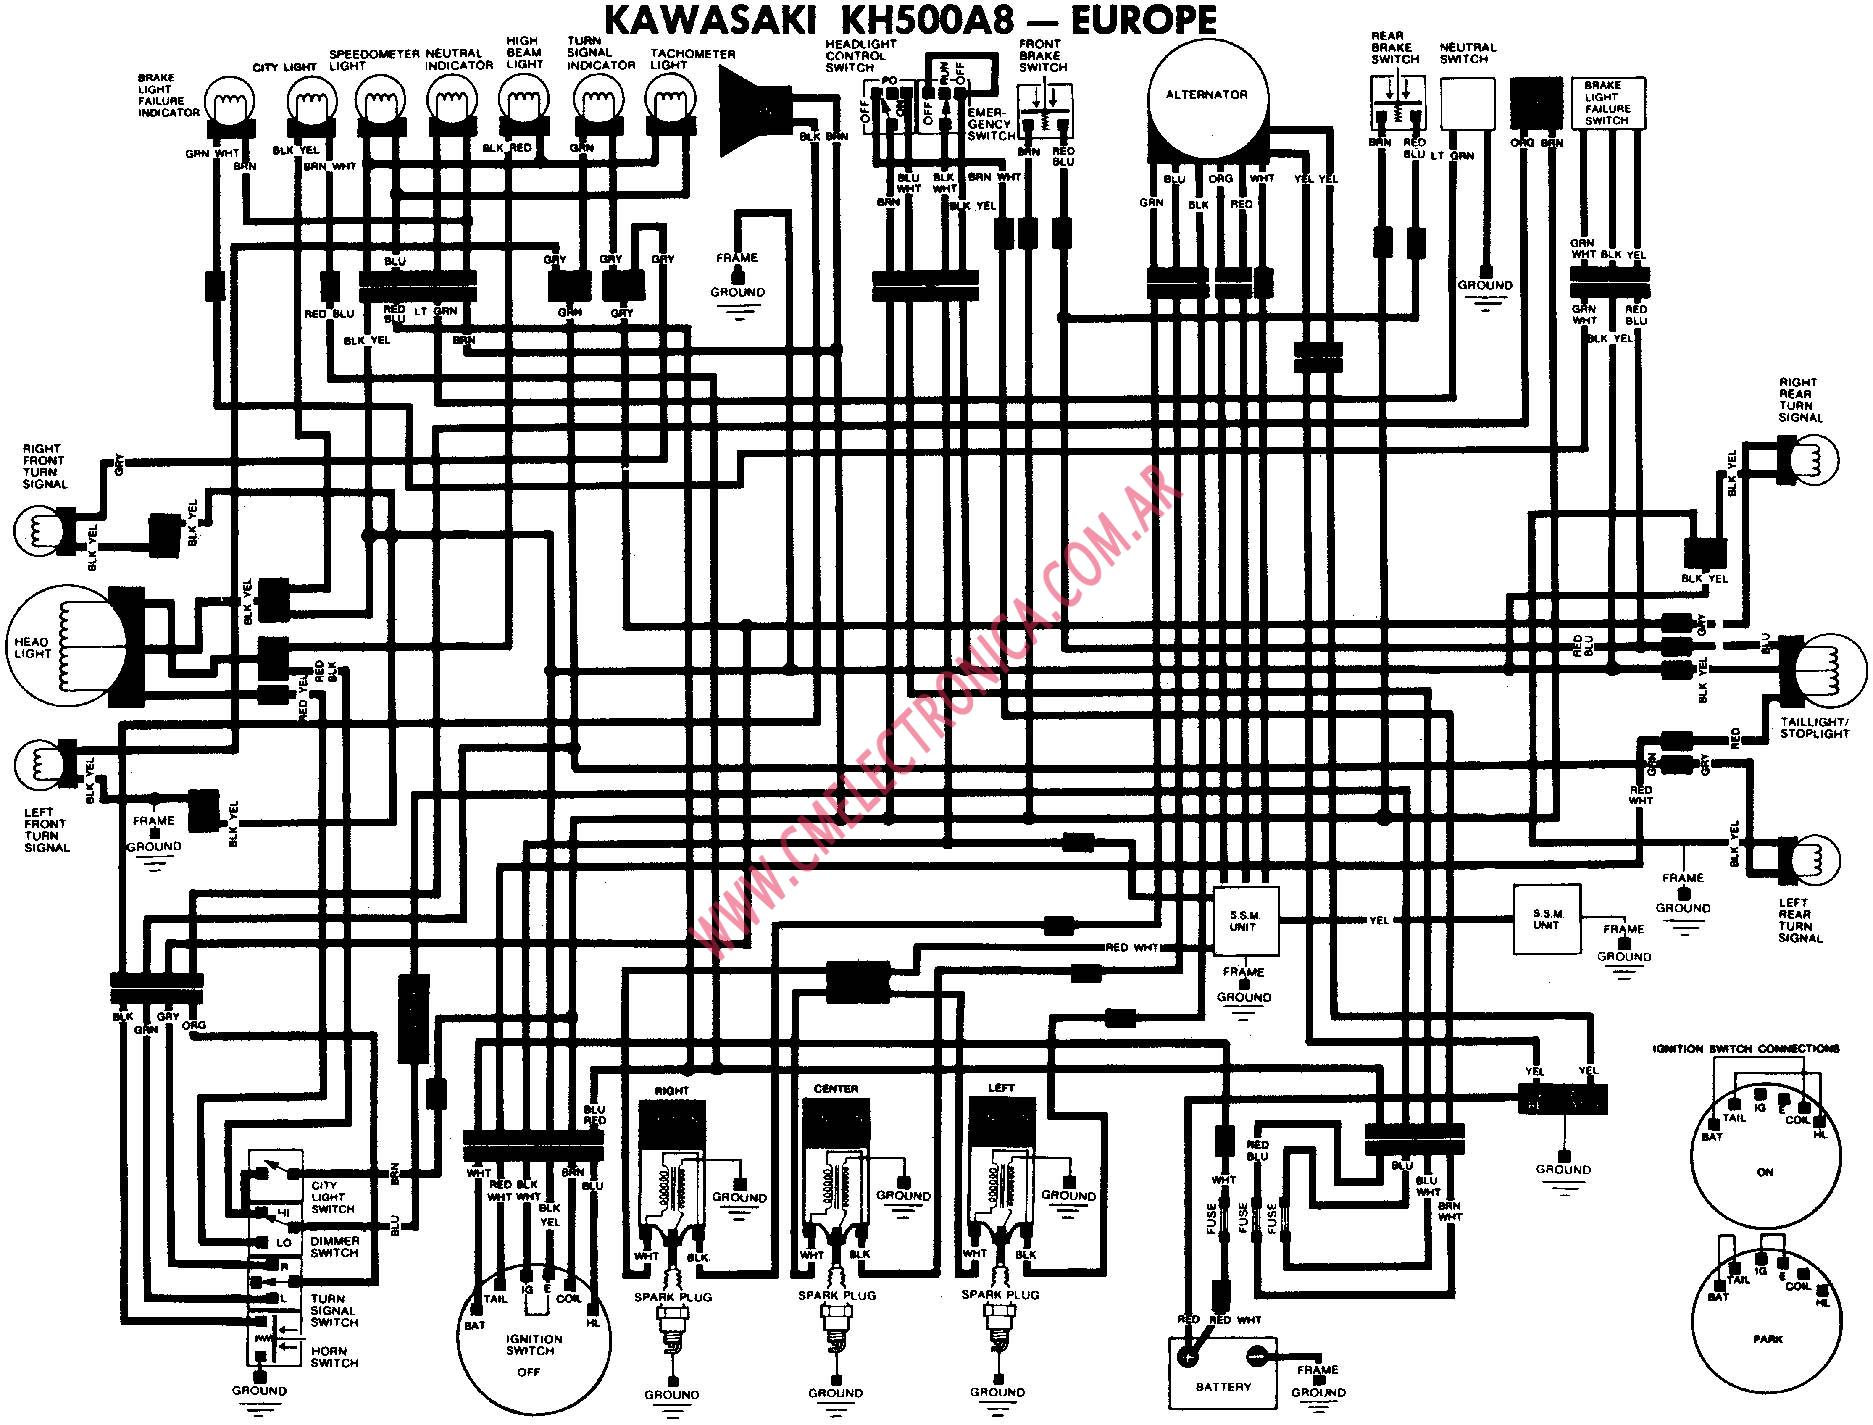 ninja 750 wiring diagram schematics and wiring diagrams ninja wiring diagram diagrams and schematics kawasaki wiring diagrams besides vulcan 750 diagram